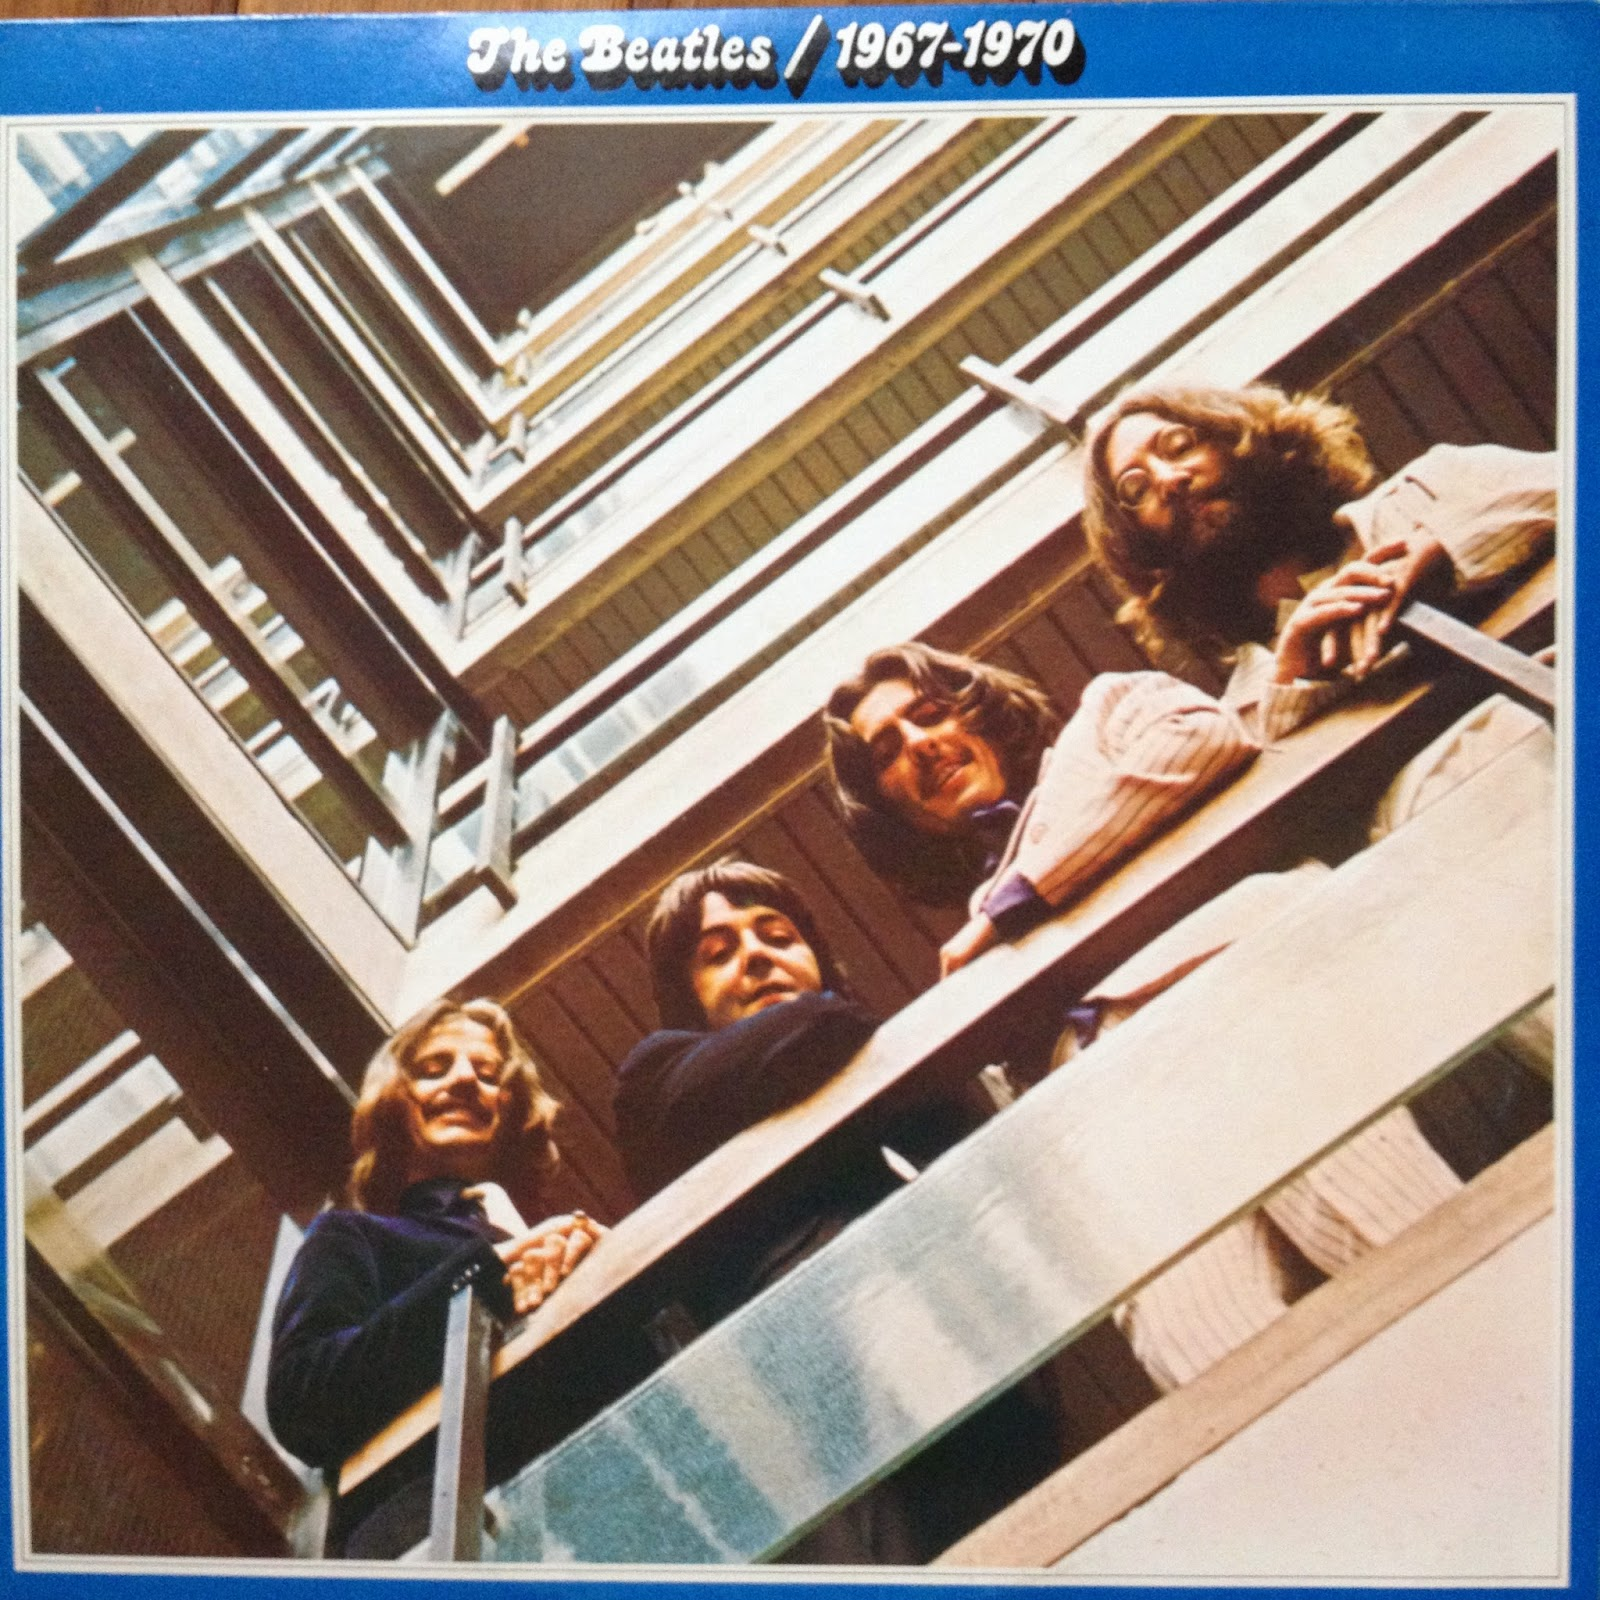 LP of Beatles / 1967-1970